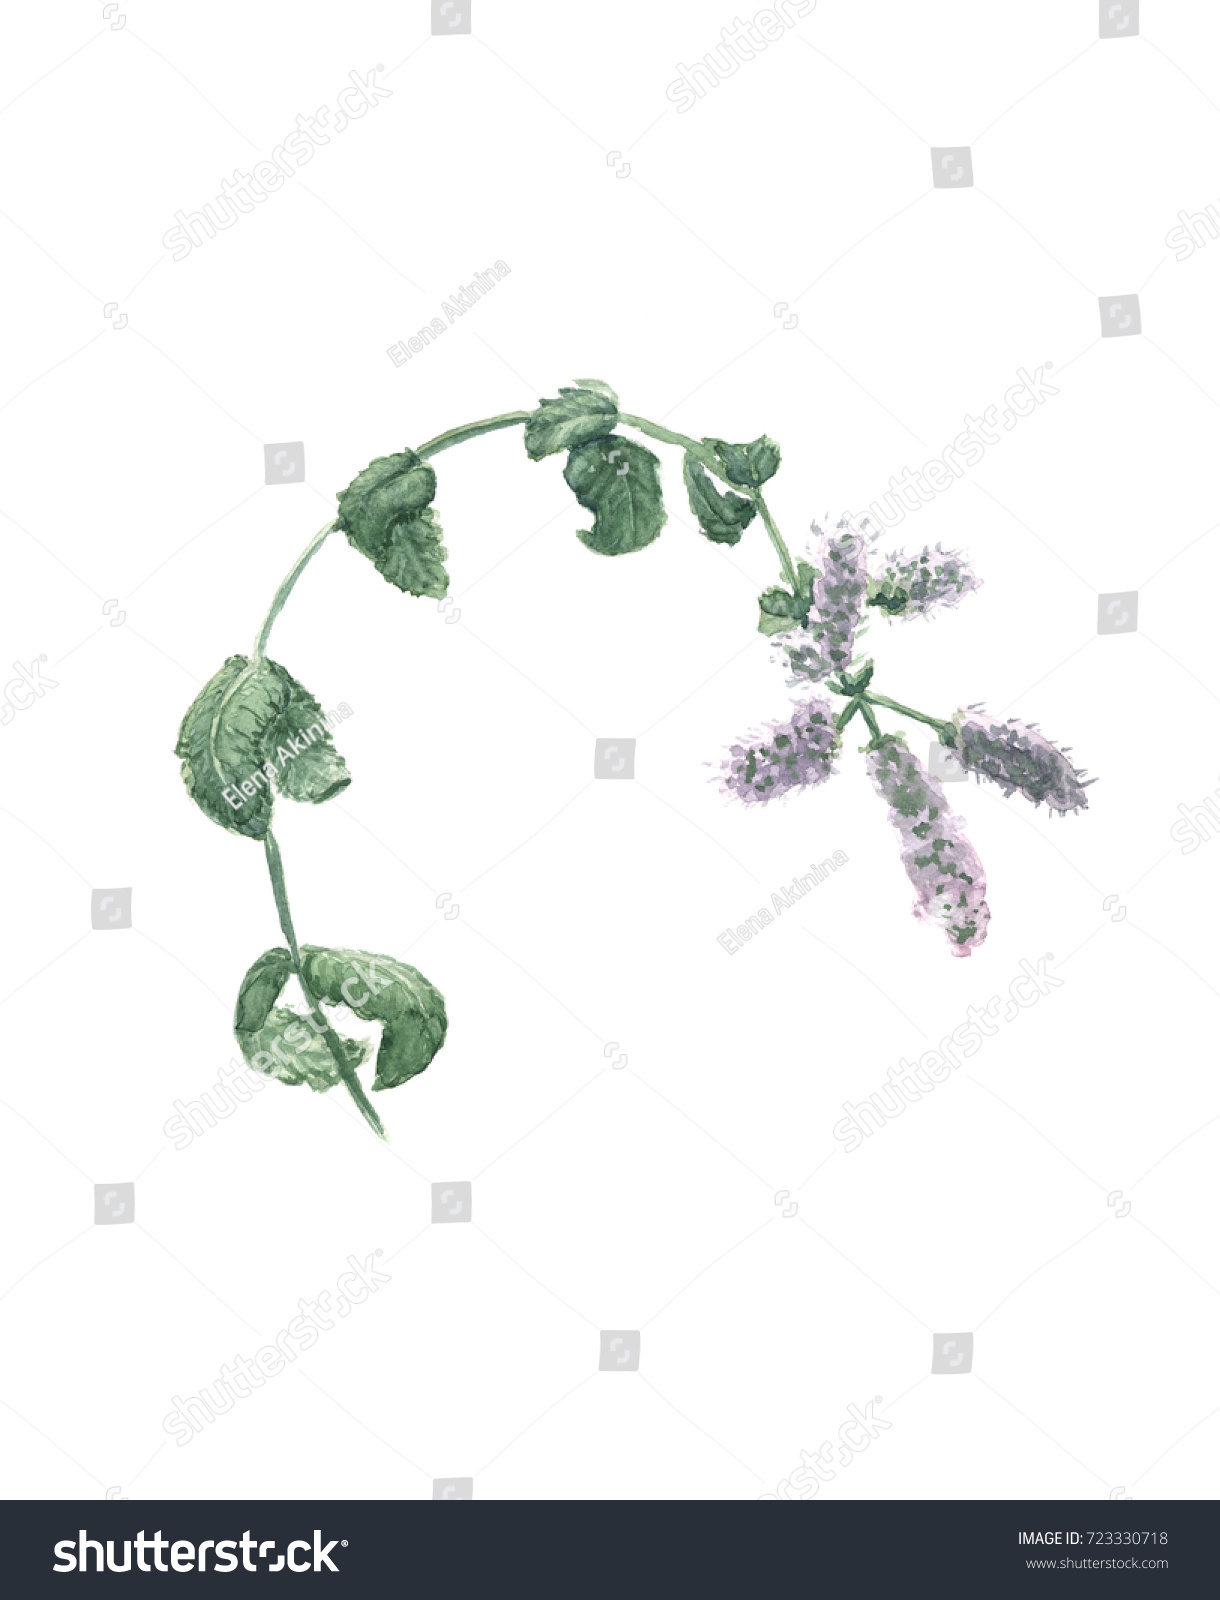 Mentha Cocinas Royalty Free Stock Illustration Of Flowering Mint Branch On White